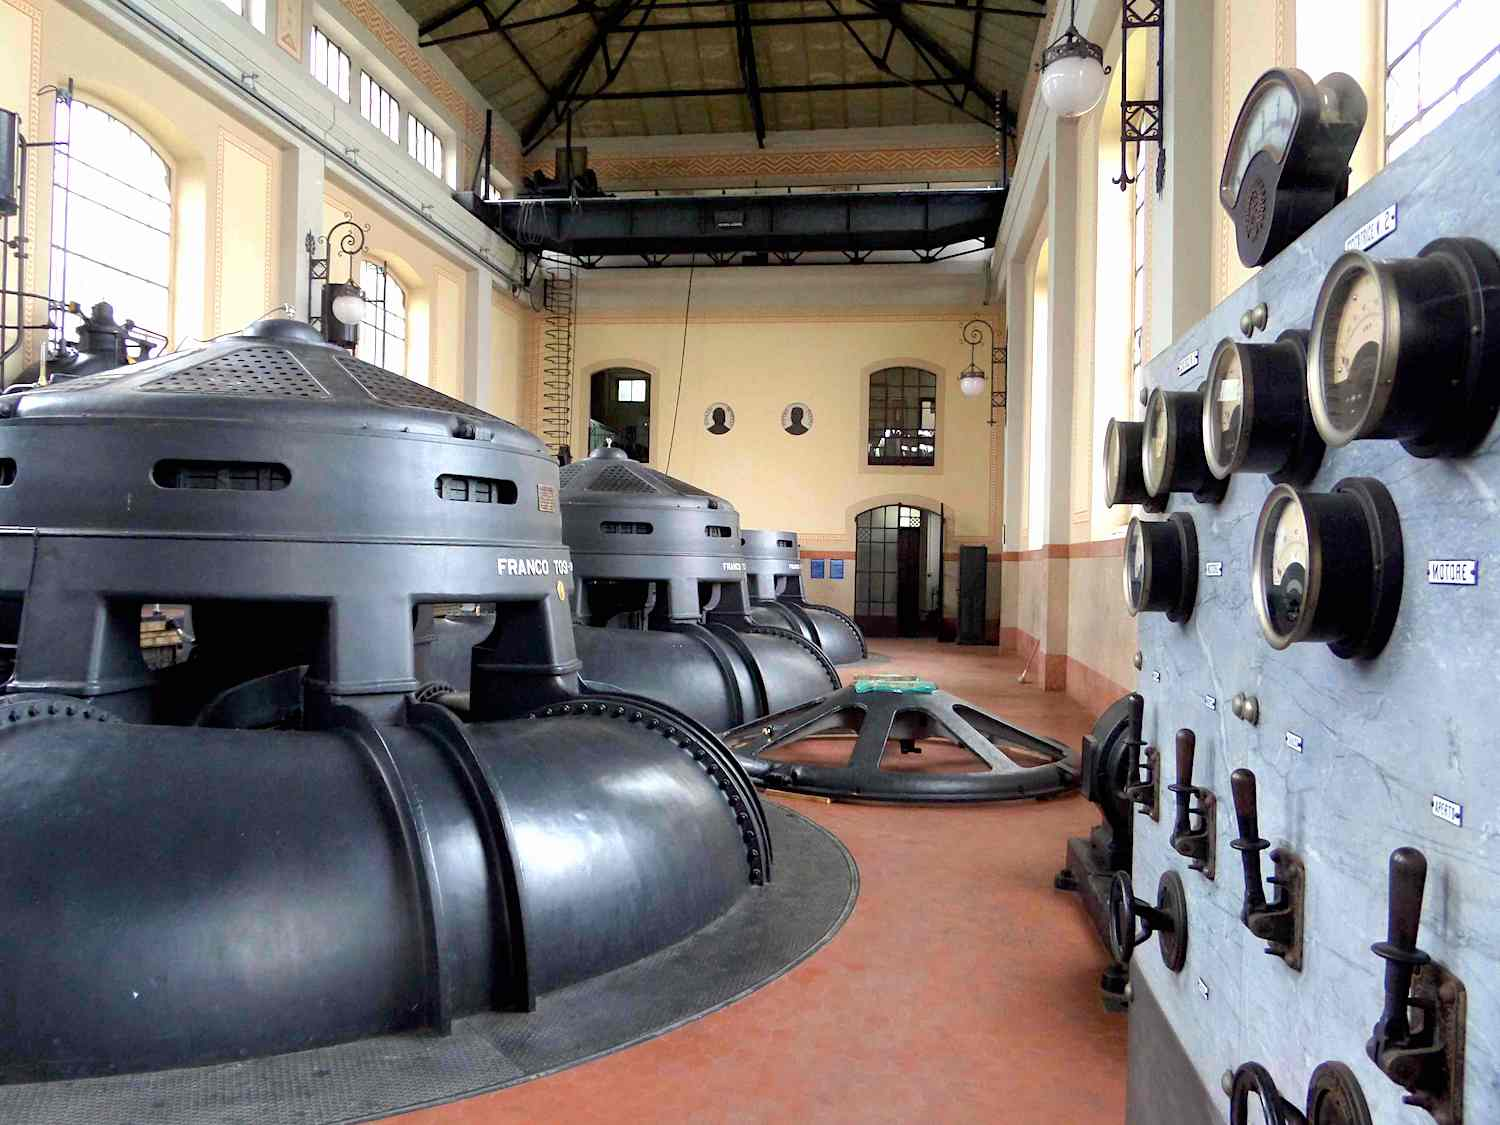 Industrial Archaeology in Emilia: Sites and Museum